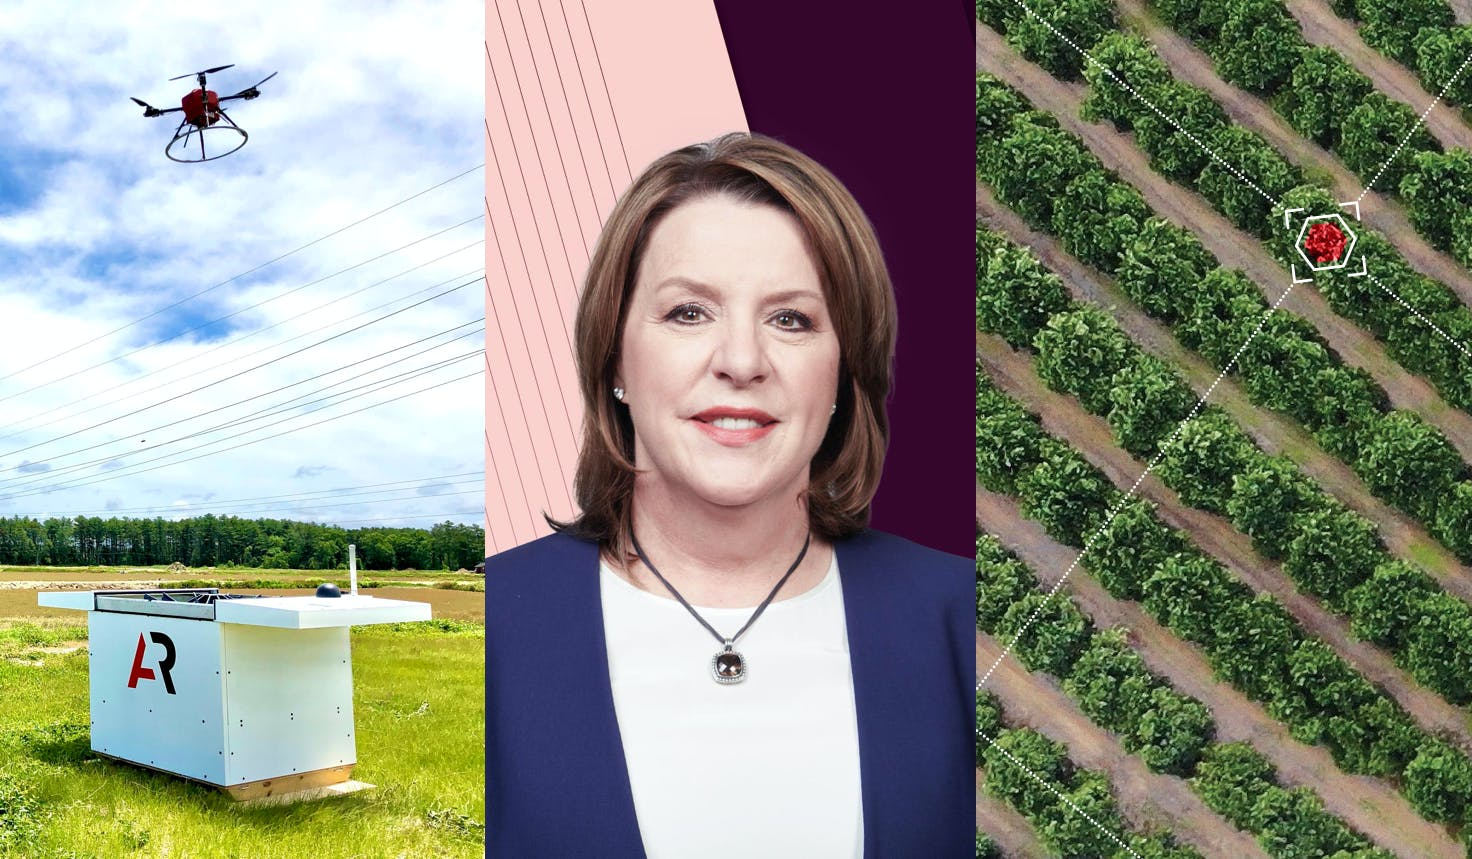 FAA approves American Robotics to fly automated drone-in-a-box—Verizon Business CEO Tami Erwin talks MEC partnership with Unity—South African startup Aerobotics raises $17M to scale AI-for-agriculture platform